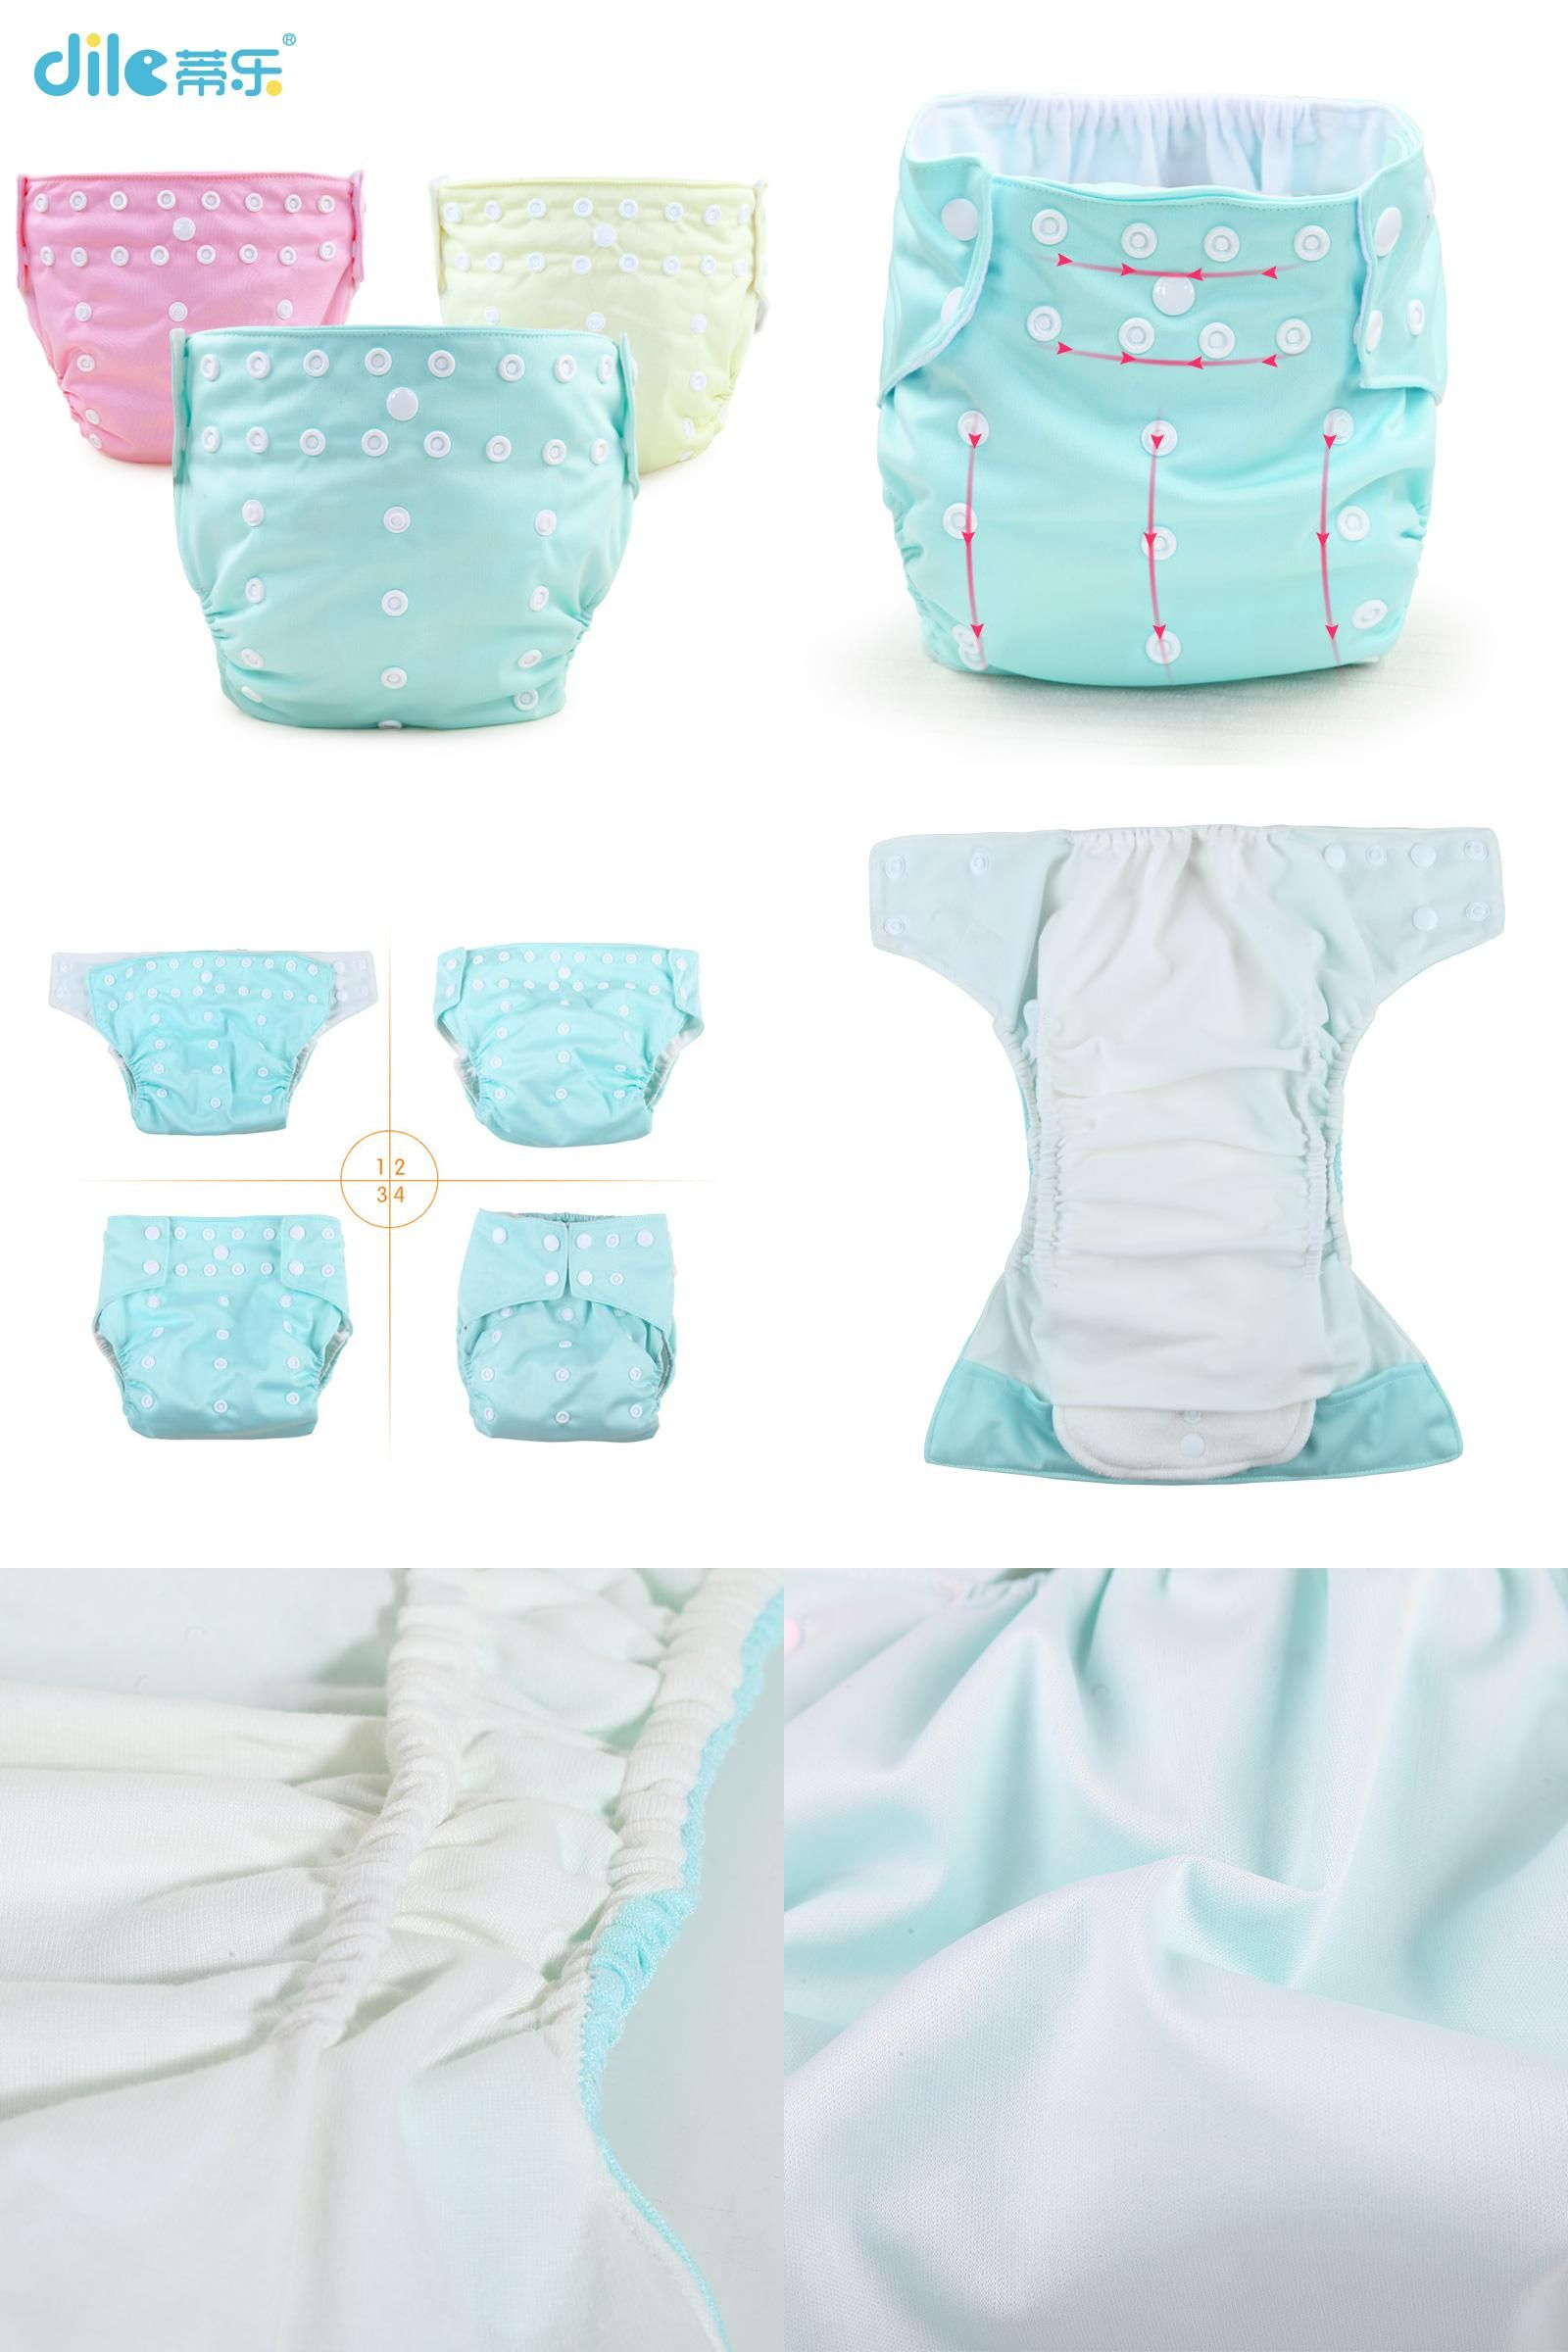 Reusable Infant Baby Waterproof Nappy Soft Washable Inserts Covers Diapers Pants